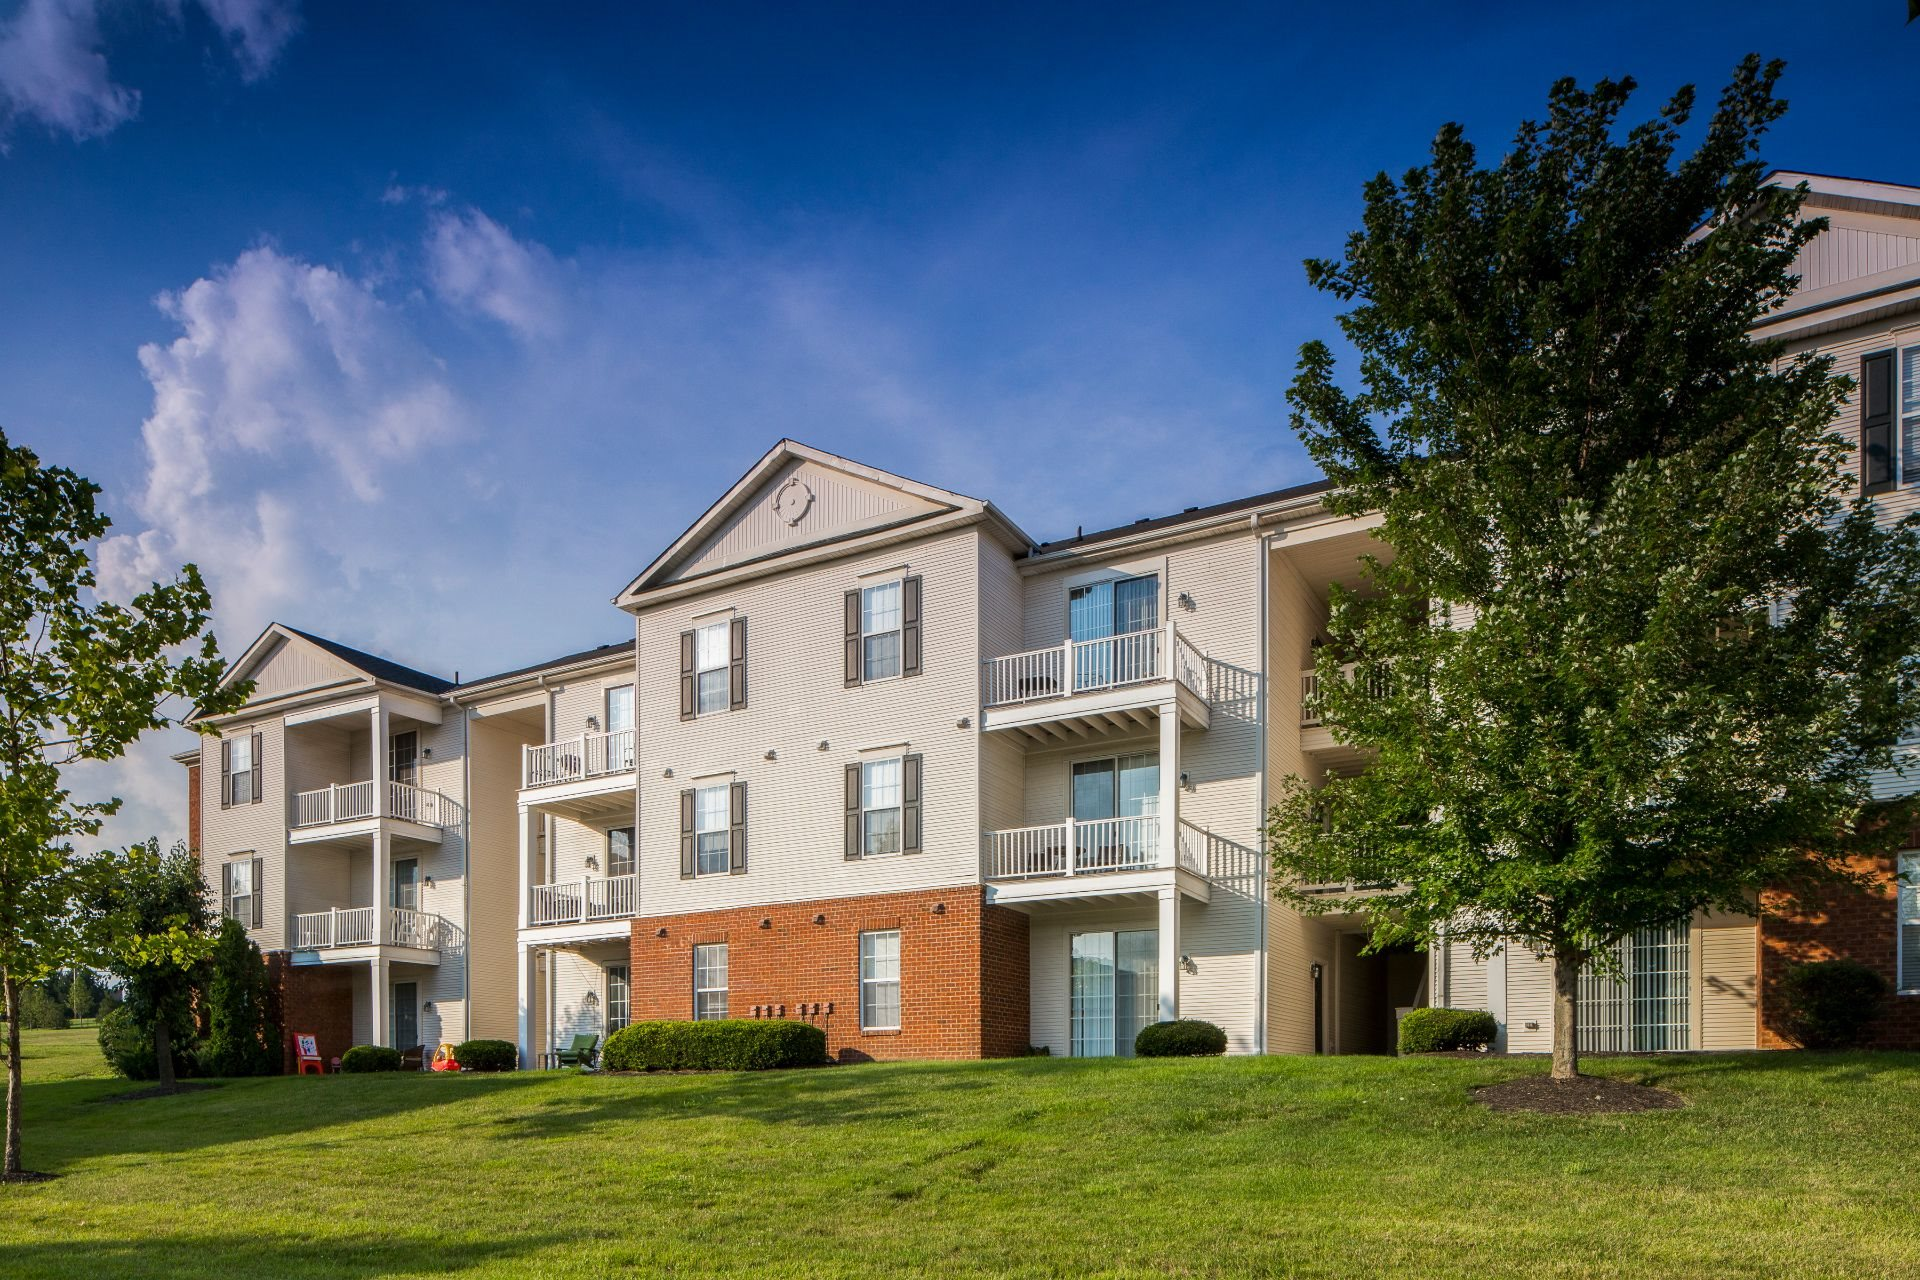 The Preserve at Beckett Ridge Apartments and Townhomes in West Chester, between Cincinnati and Dayton, -2515 Fox Sedge Way, West Chester OH 45069--32 acre natural preserve--Healthy Living and Green Space